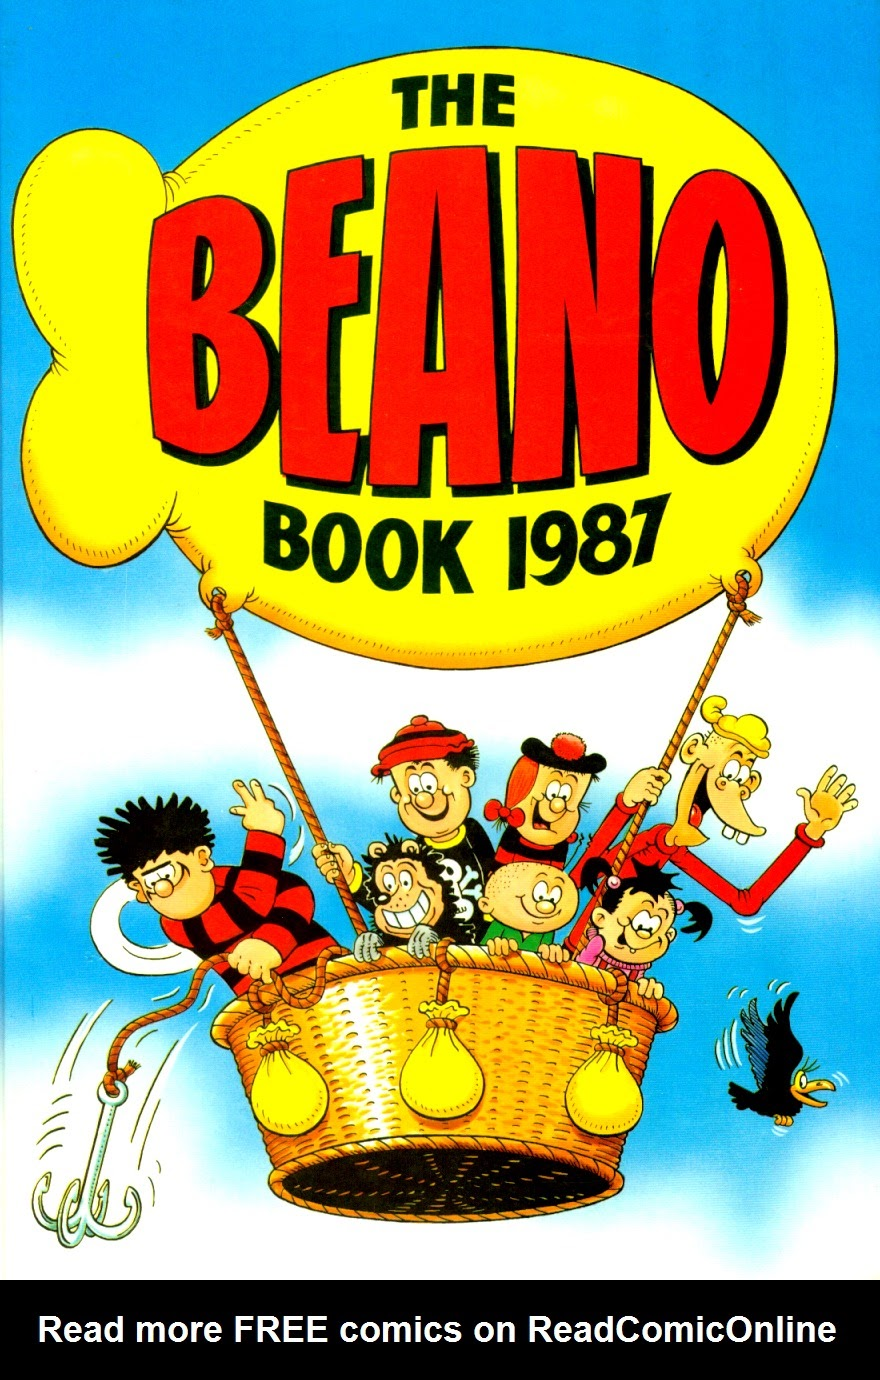 The Beano Book (Annual) 1987 Page 1